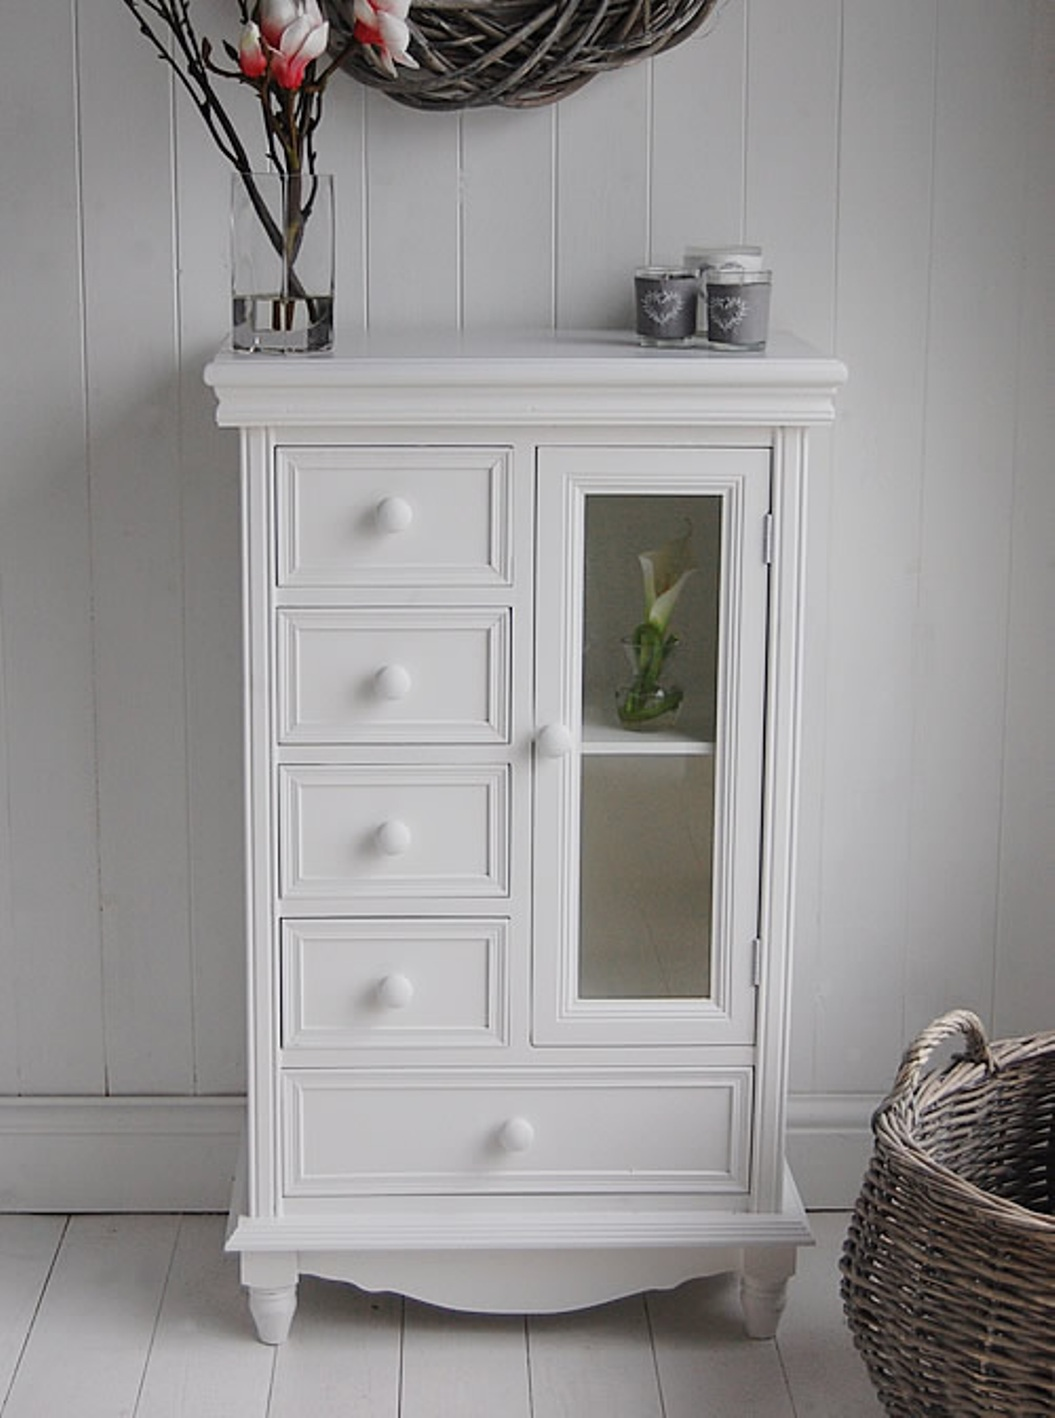 White Bathroom Storage Cabinet With Glass Doors And Drawers & Storage Cabinet with Glass Doors | HomesFeed